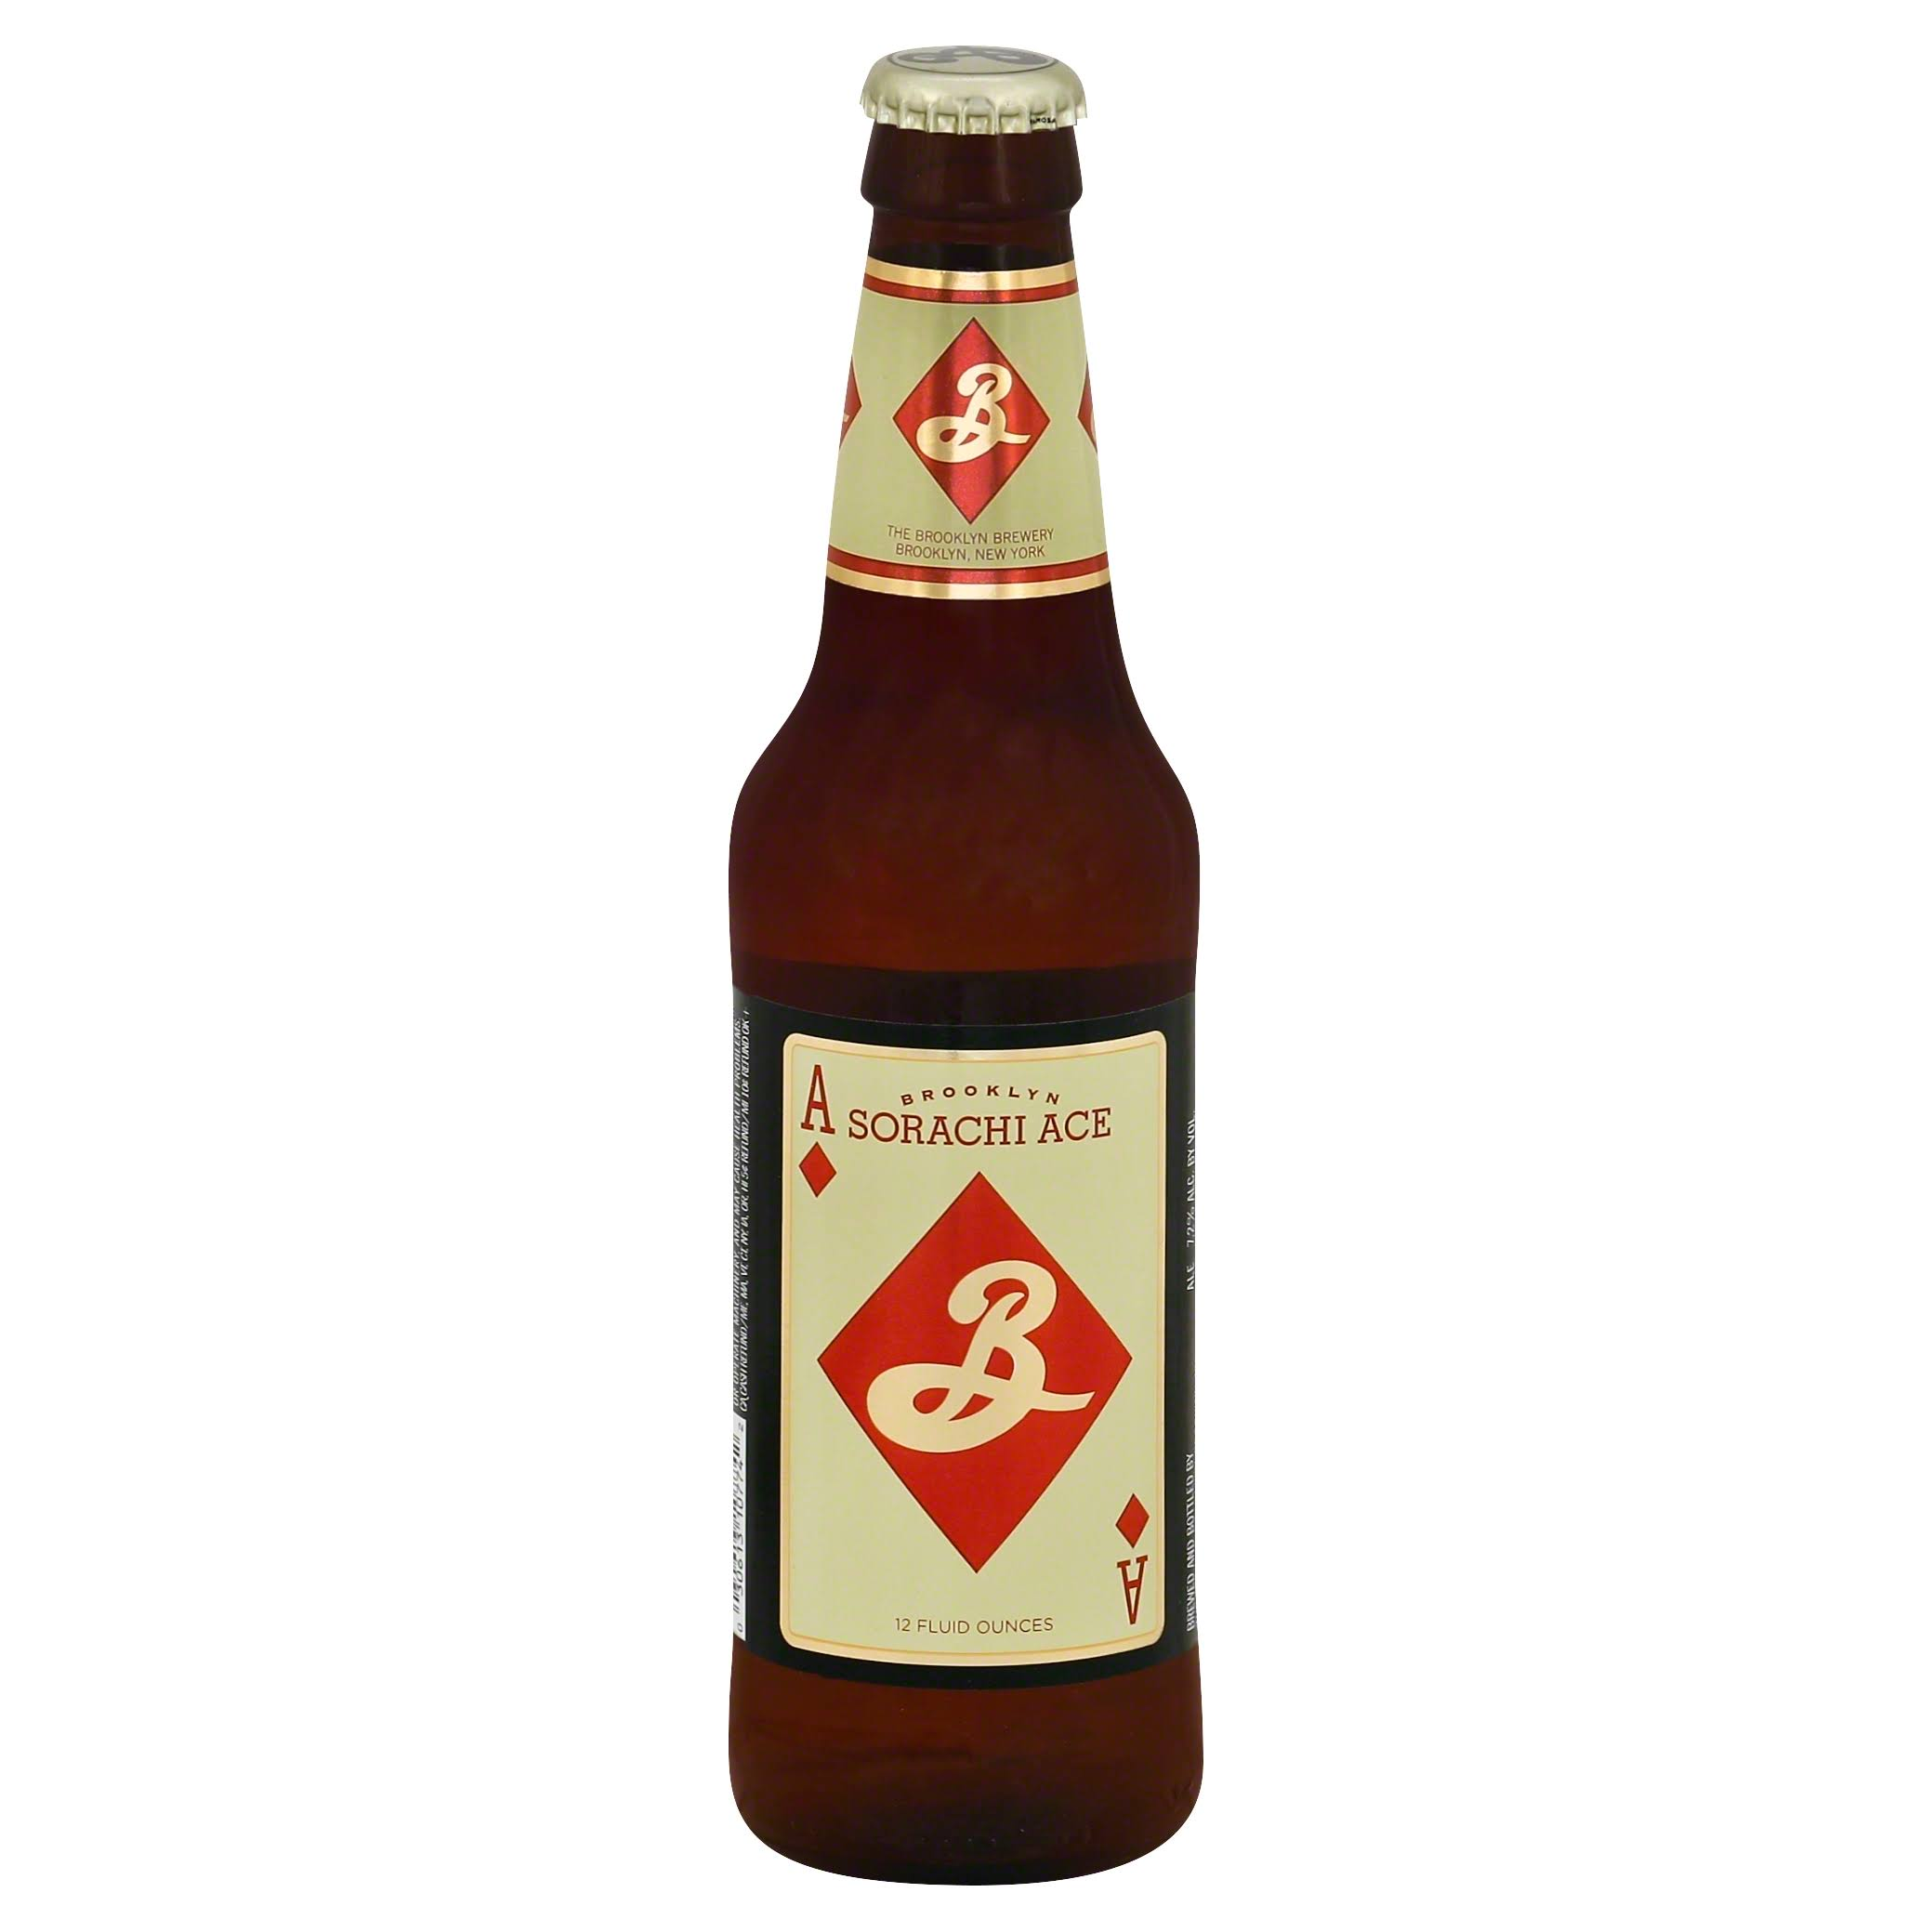 Brooklyn Brewery Ale, Saison, Sorachi Ace - 12 fl oz